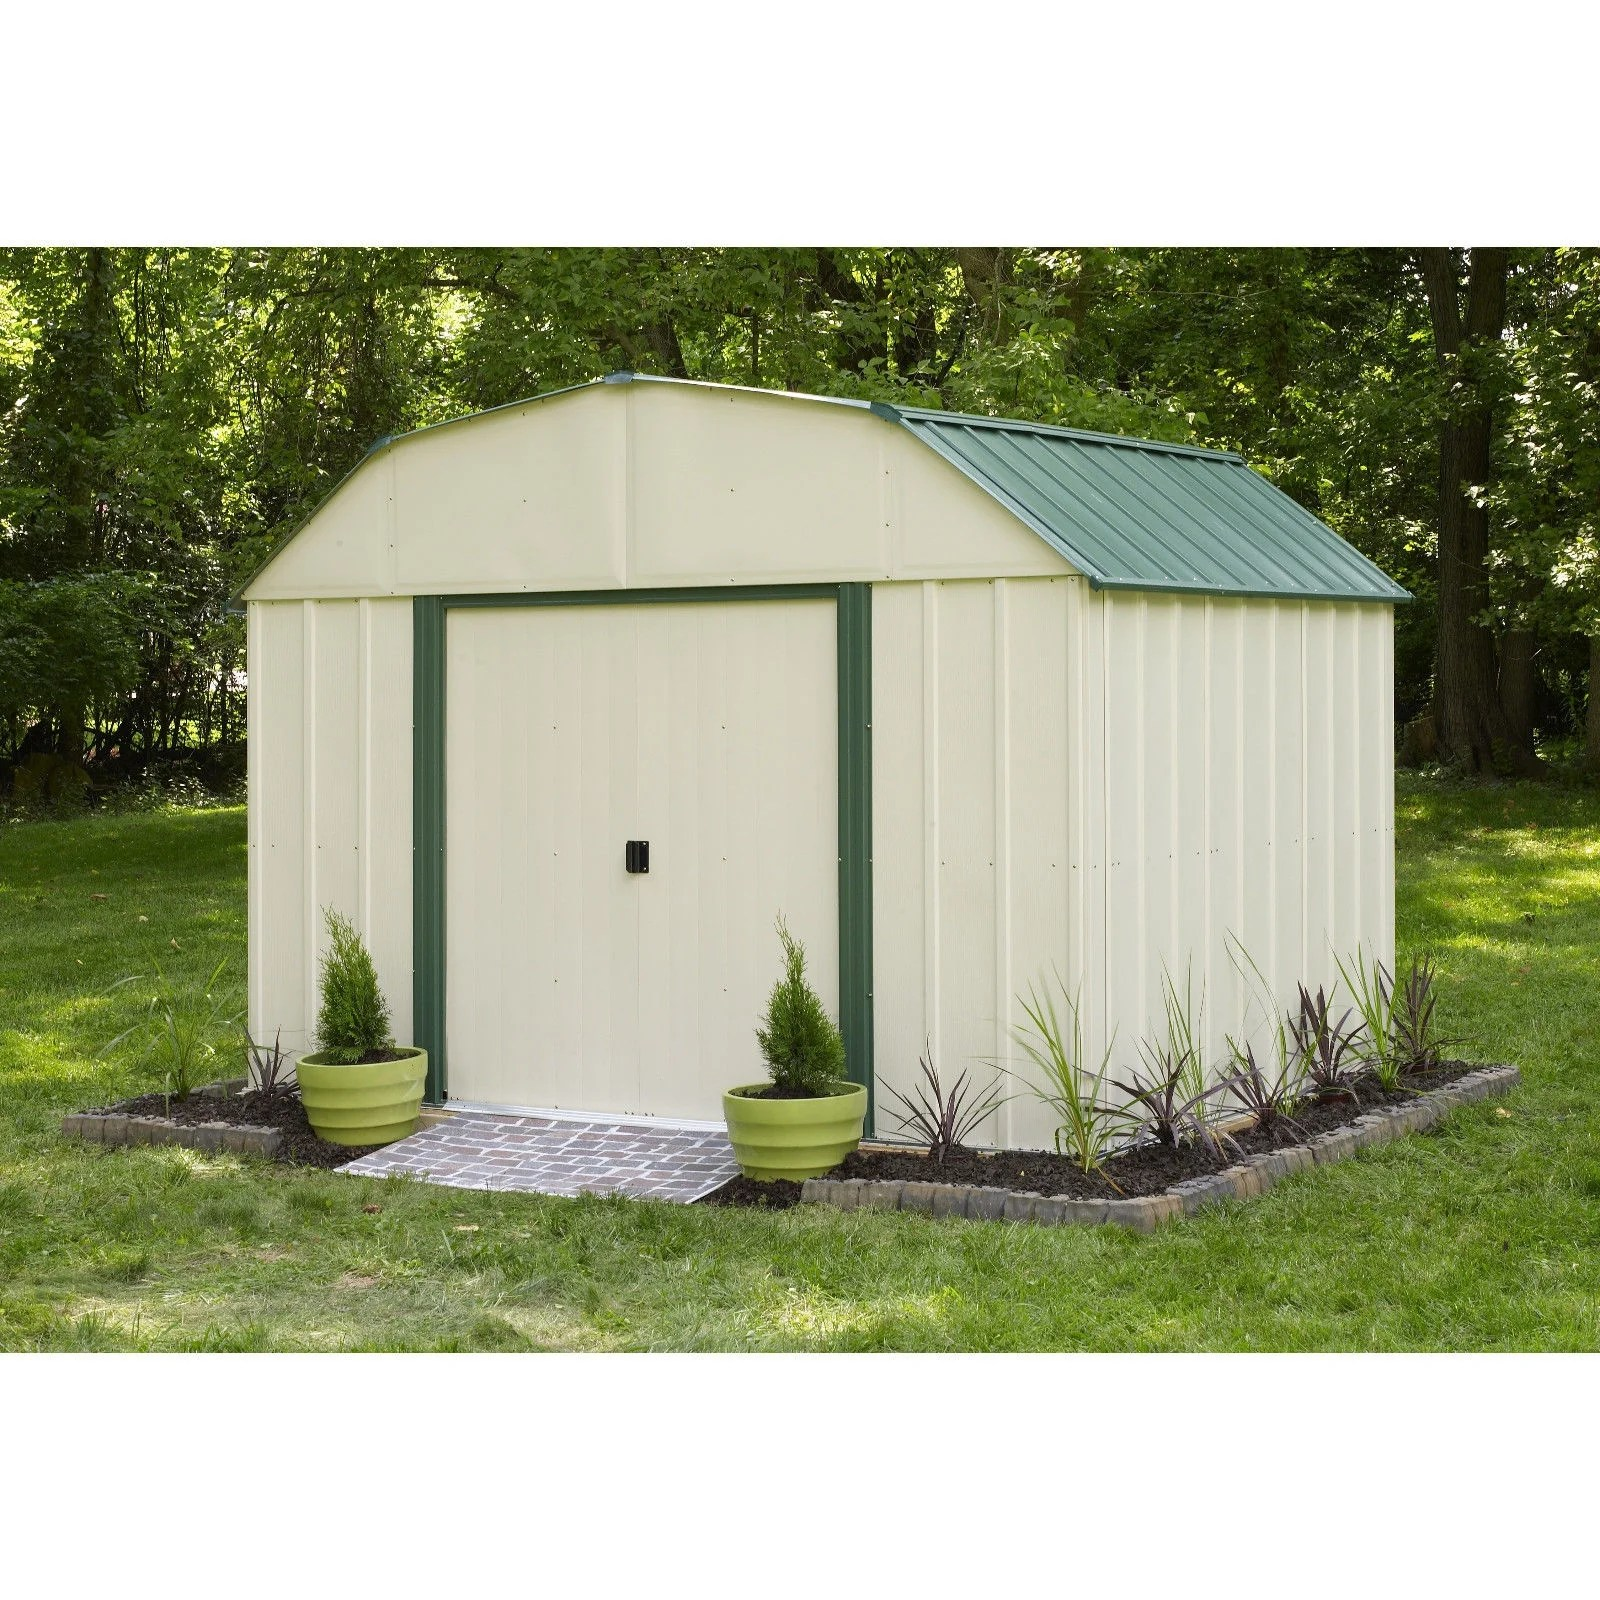 Steel Storage Sheds Arrow Vinyl Sheridan 10 W X 8 L Steel Storage Shed Vs108 B